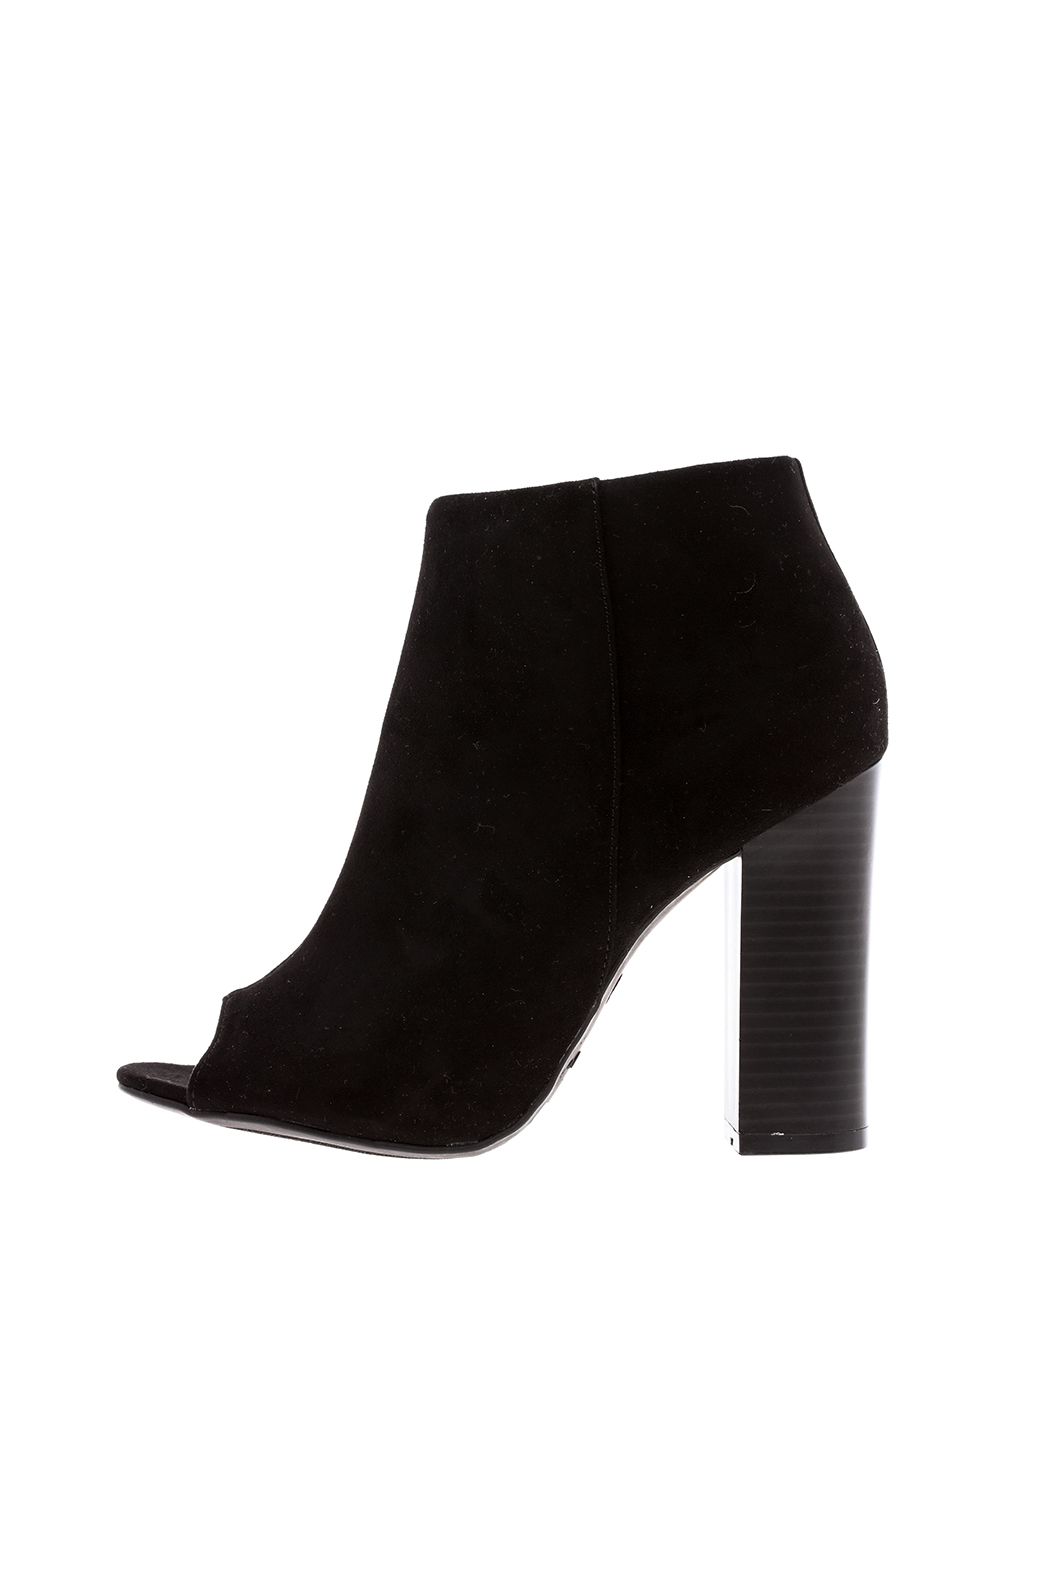 Bamboo Peep Toe Bootie from New York by